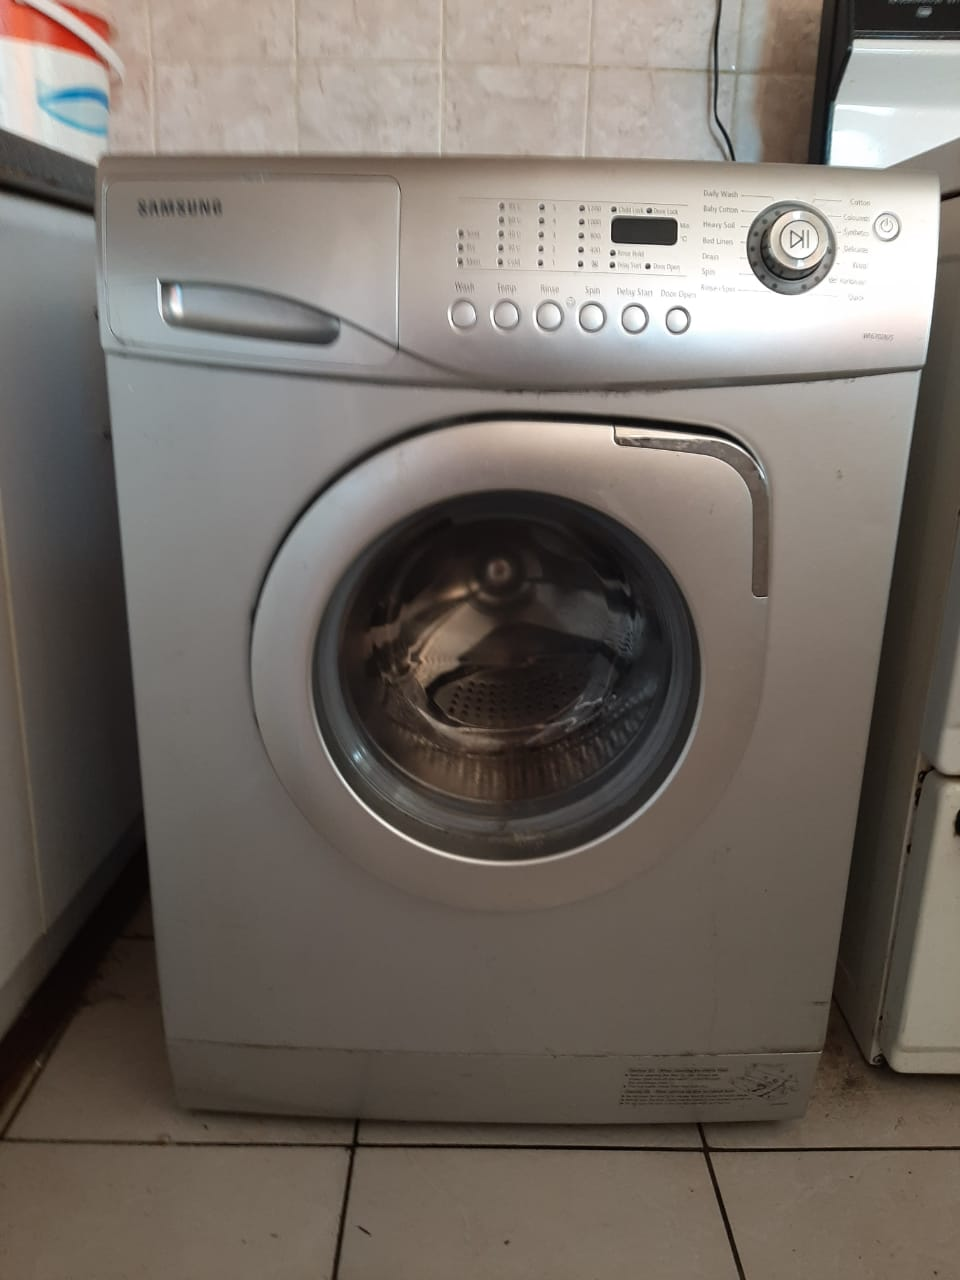 Samsung Frontloader Washing Machine